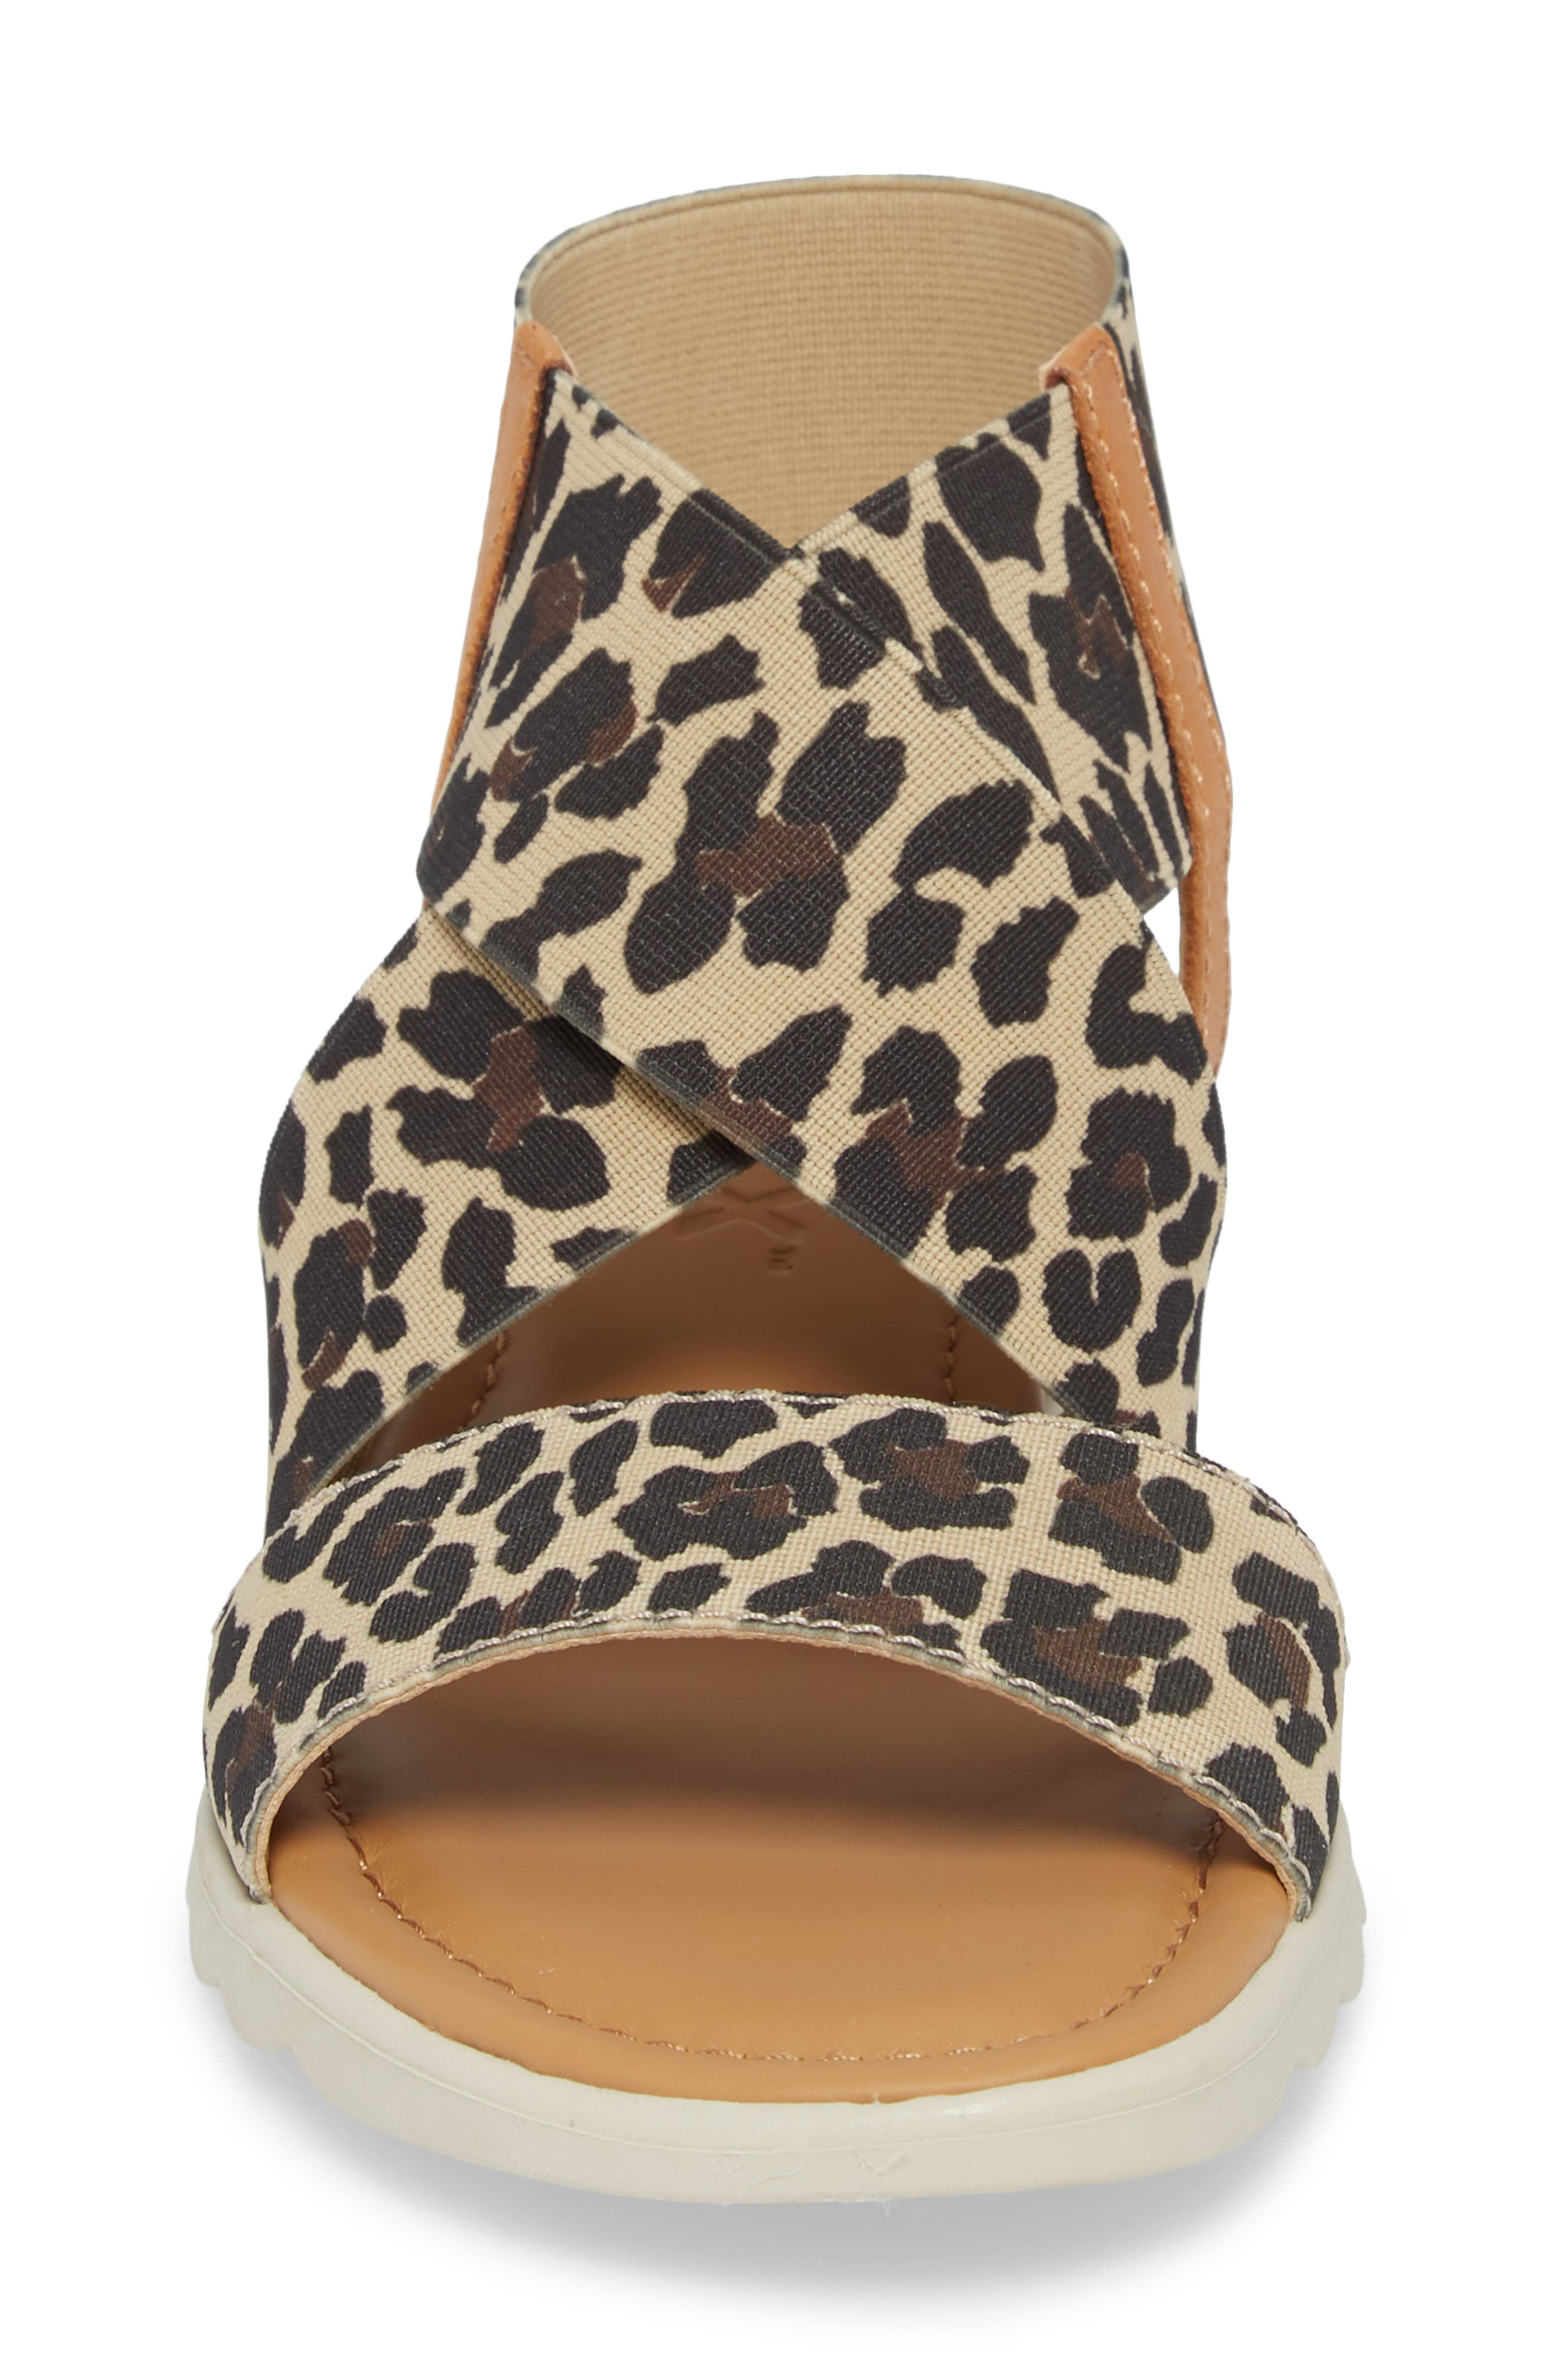 Extra Sandal,                             Alternate thumbnail 4, color,                             DUNE LEOPARD FABRIC